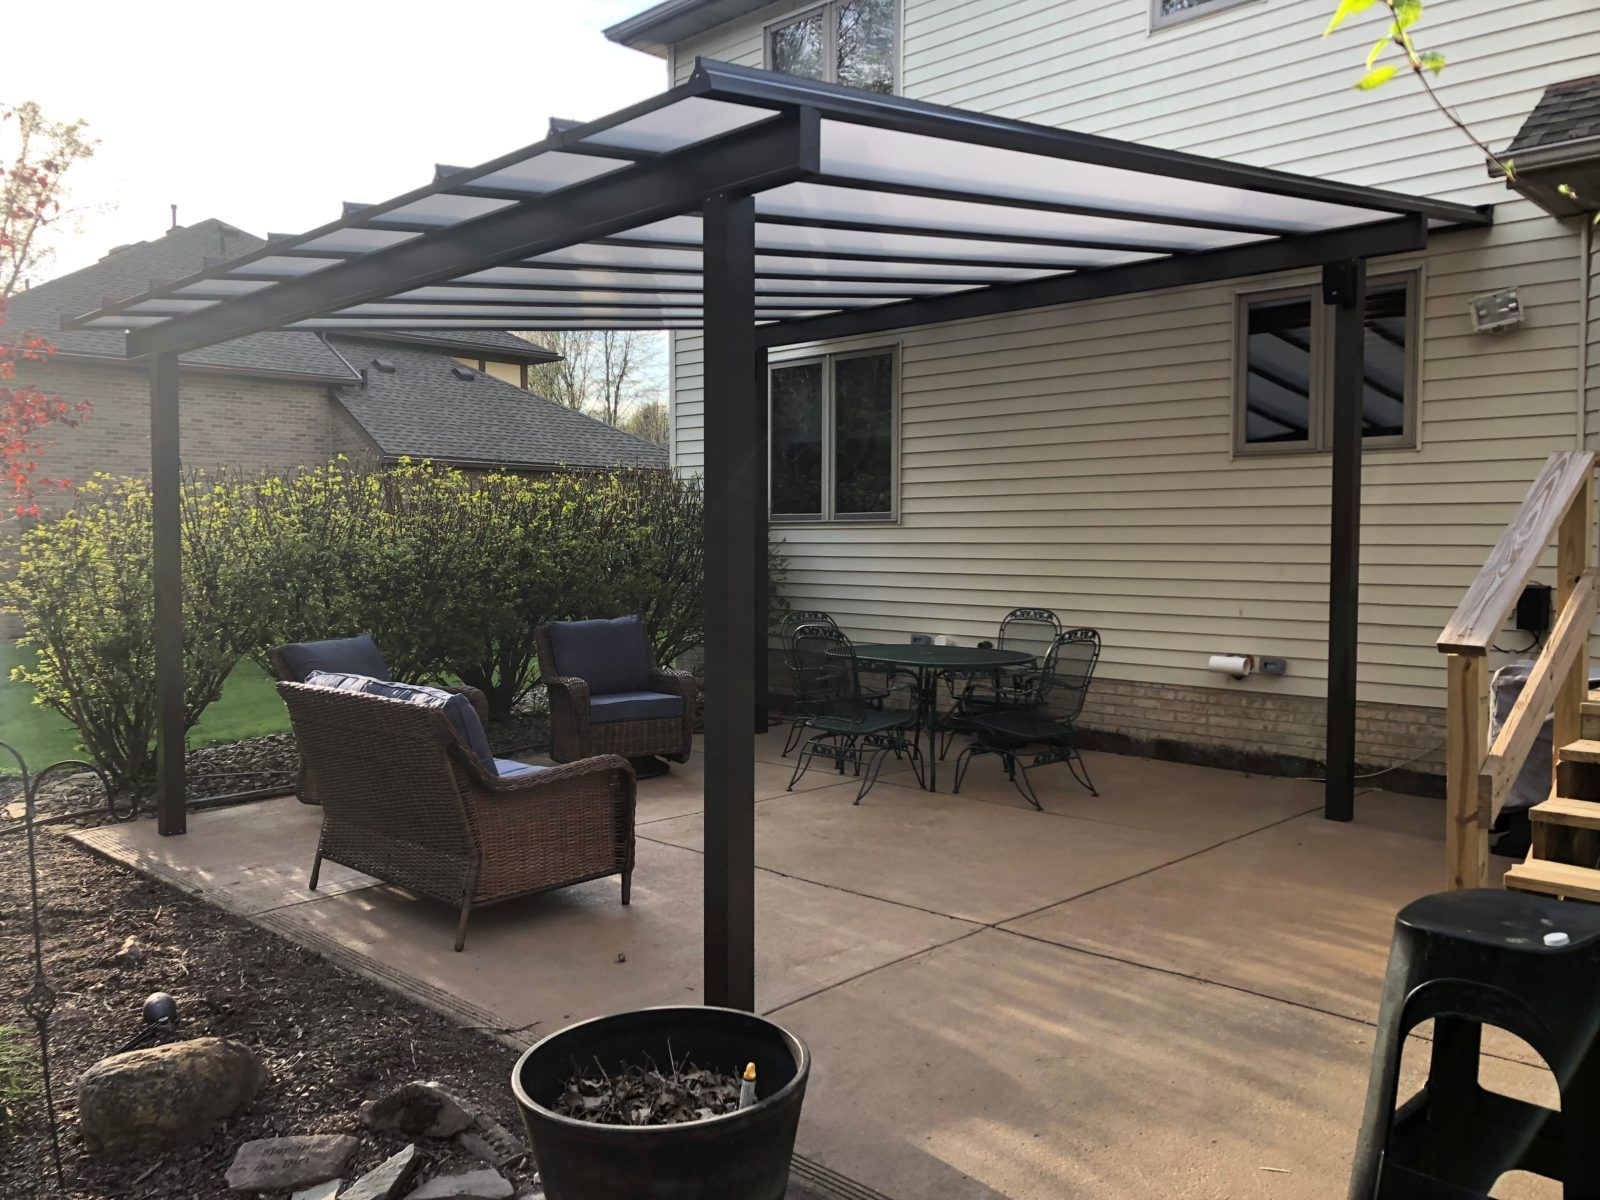 Bright Covers Photos Outdoor Shade Structures Patio Covers Porch Roofs Patio Covered Patio Outdoor Shade